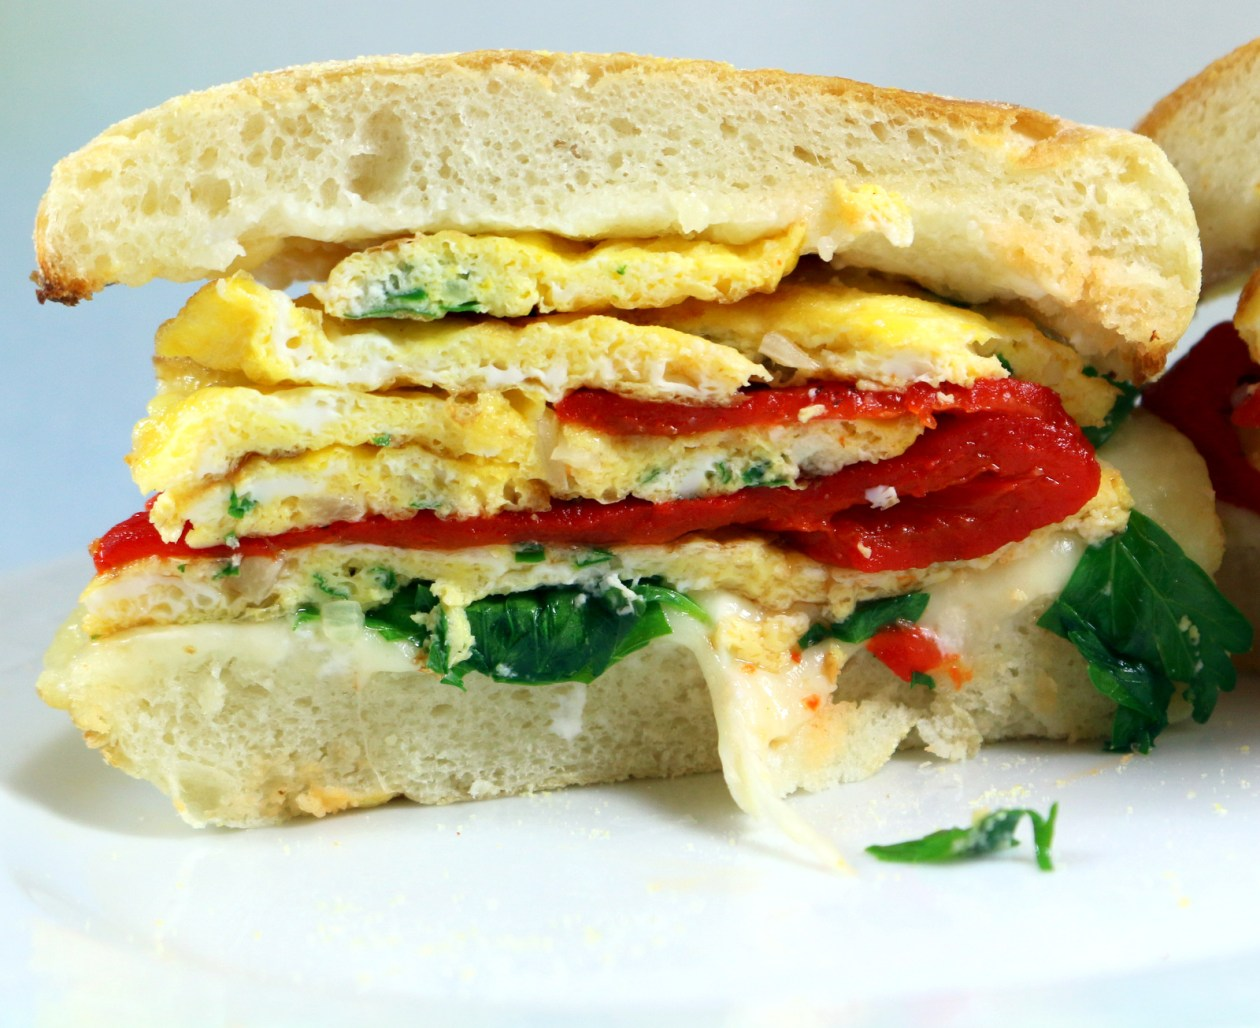 5 Star Breakfast Sandwich from best food blog 5starcookies -serve and enjoy